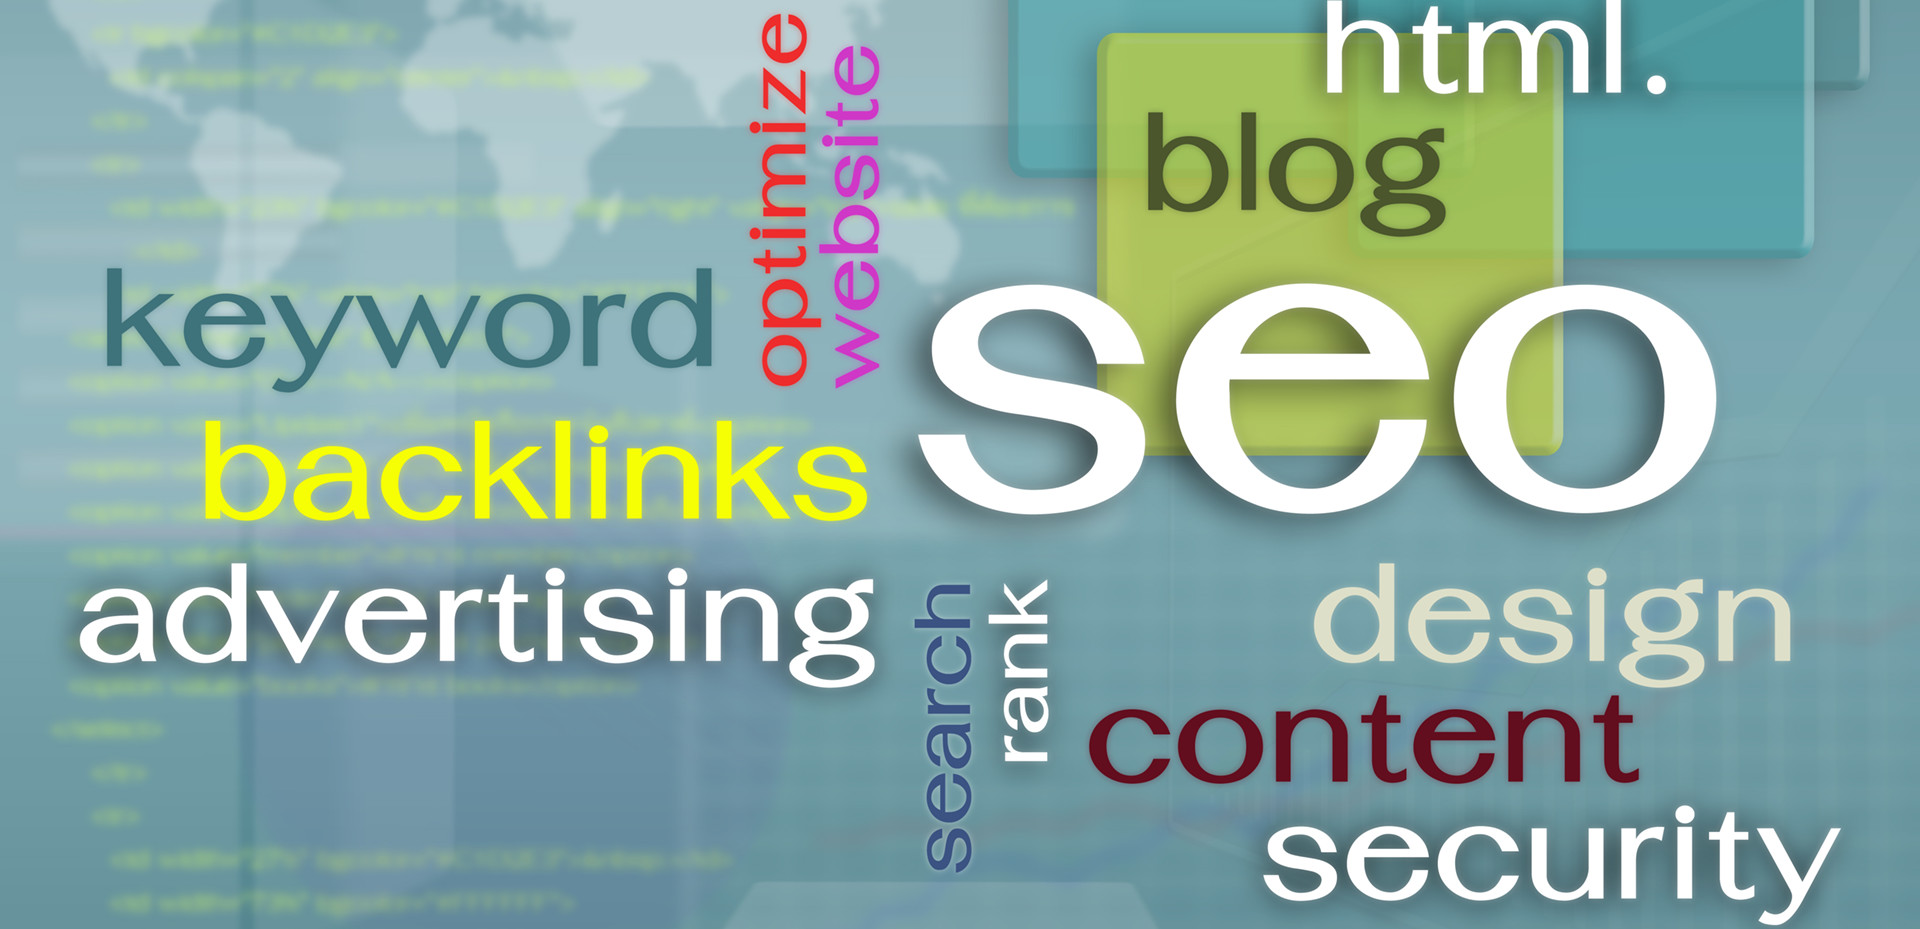 SEO, Agentur, Backlinks, Content, Design, Web, Developer, EntwicklerWebdesign Dienst Überlingen